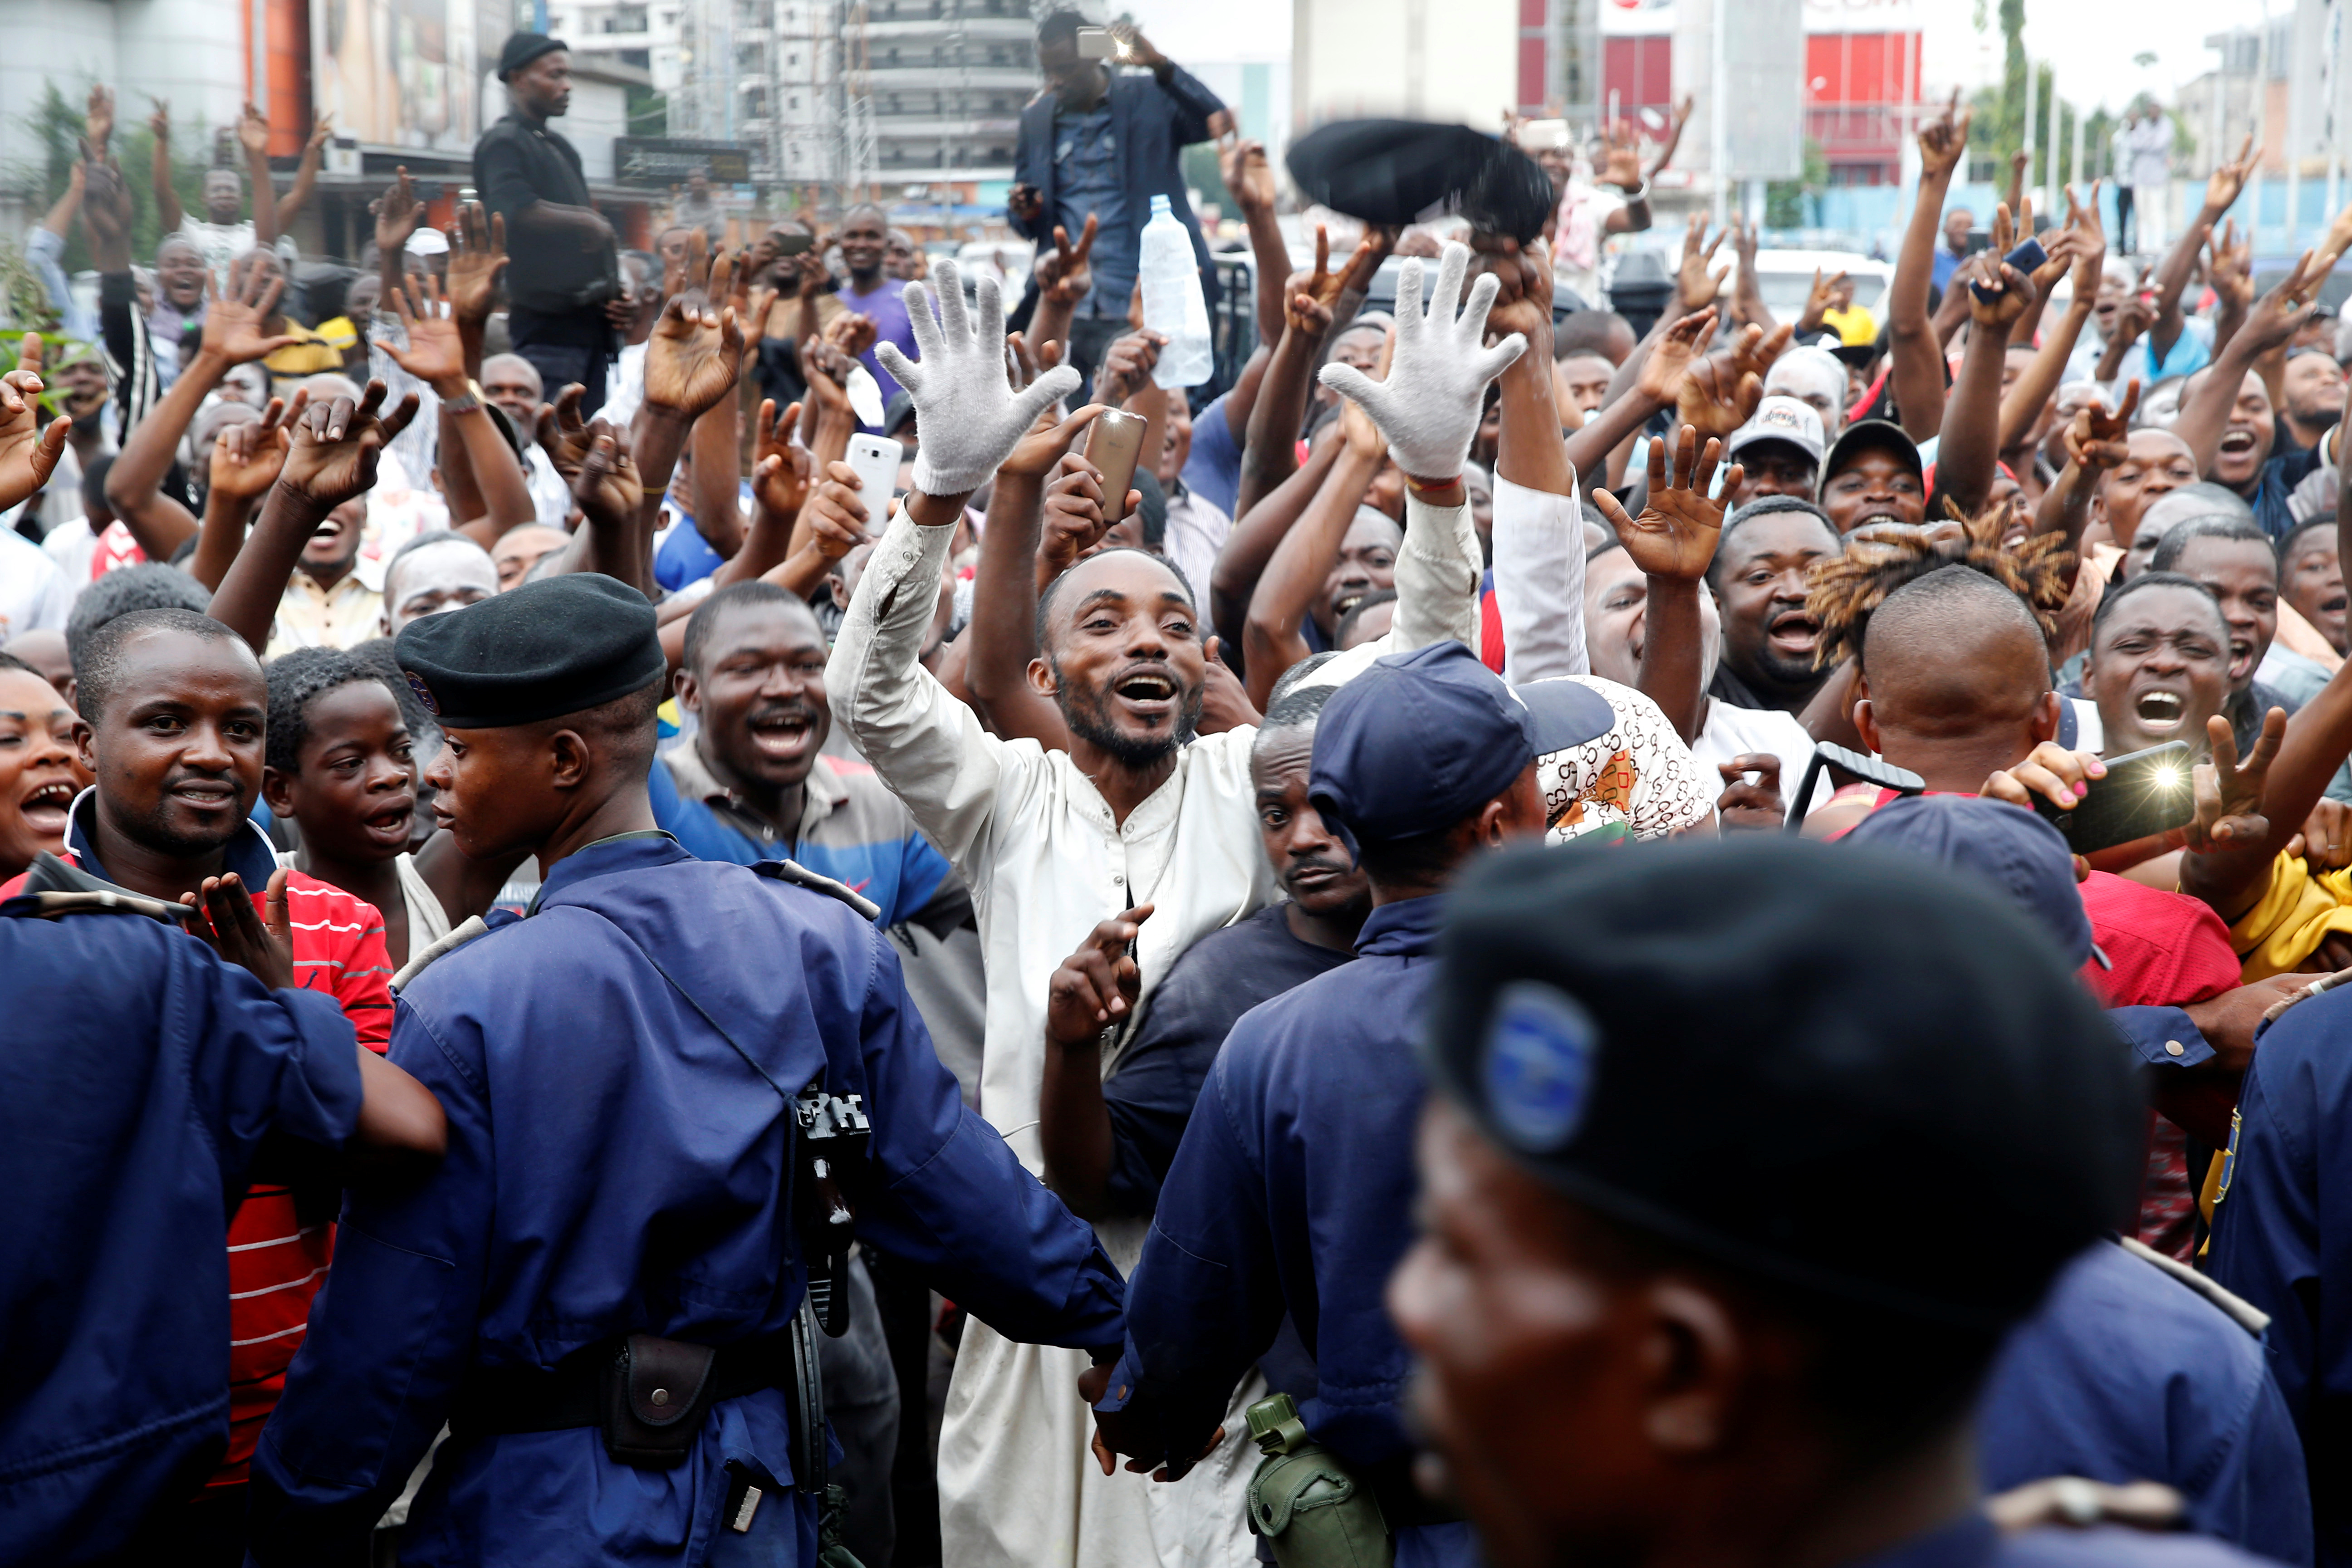 Supporters of Felix Tshisekedi, leader of the Congolese main opposition party, the Union for Democracy and Social Progress who was announced as the winner of the presidential elections, celebrate in the streets of Kinshasa, Democratic Republic of Con...